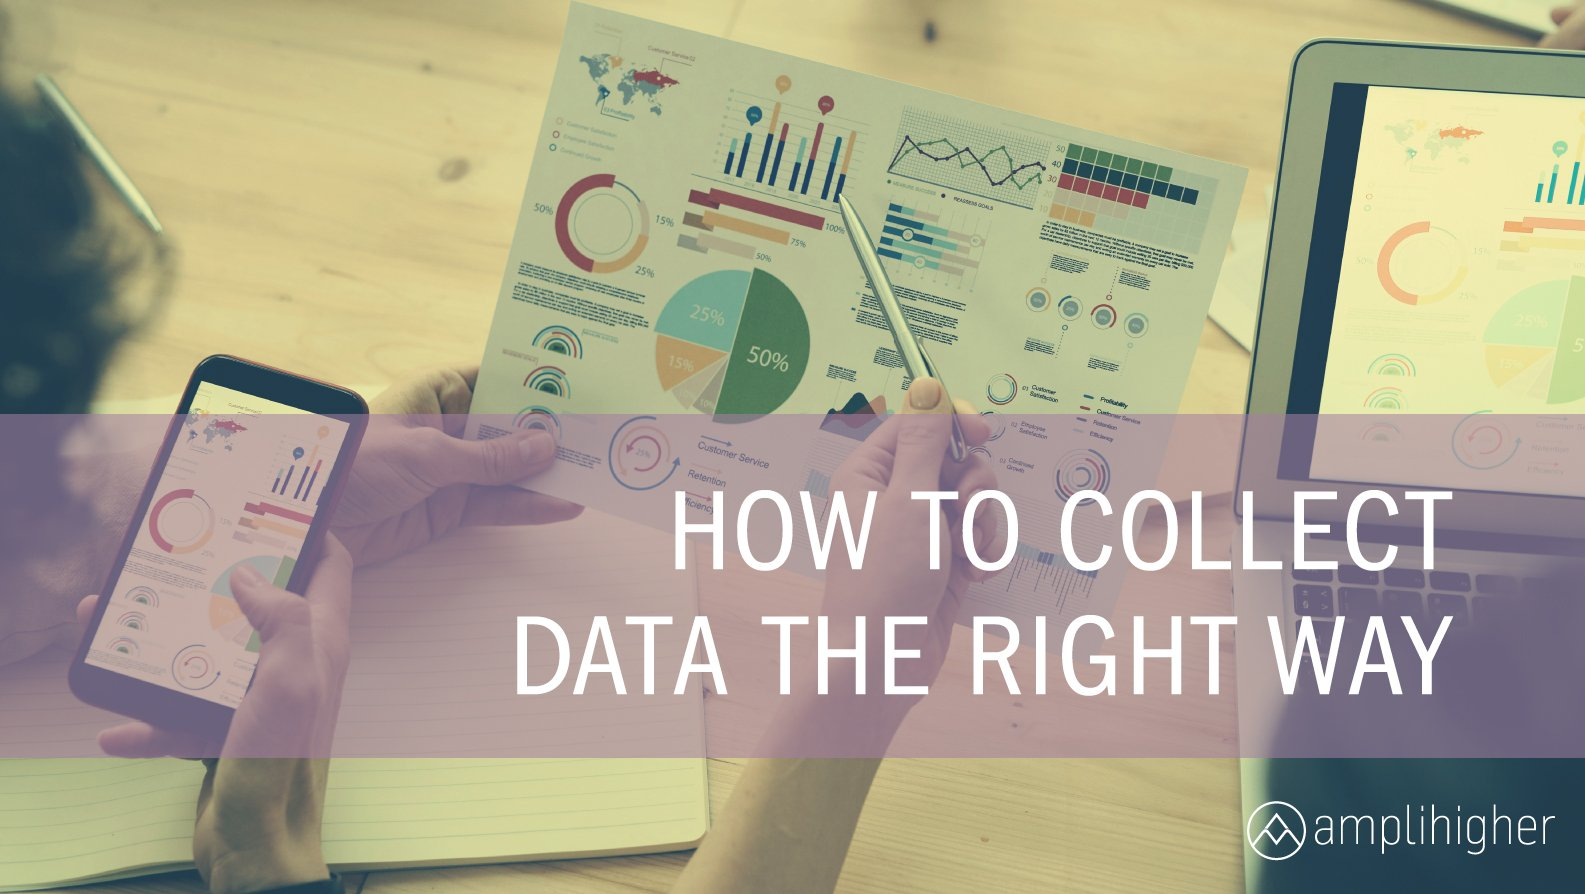 the right way to collect data